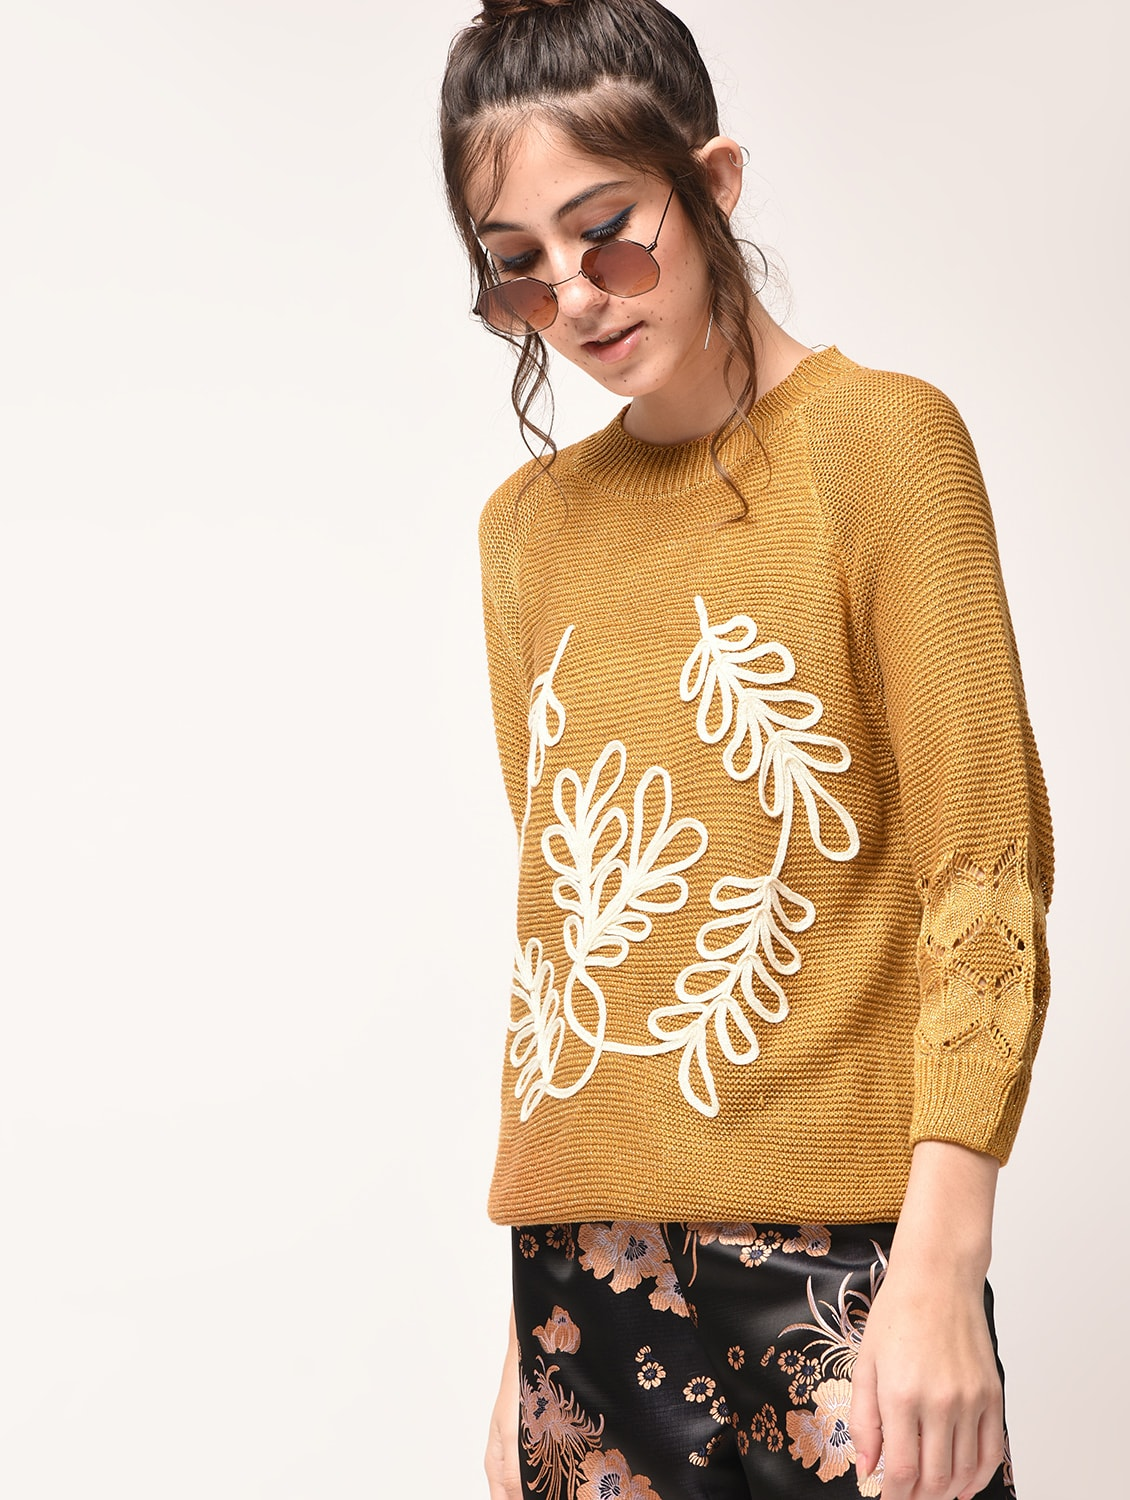 75d56f2fd6 Buy Lace Detail Ribbed Pullover by Heronica - Online shopping for Pullovers  in India